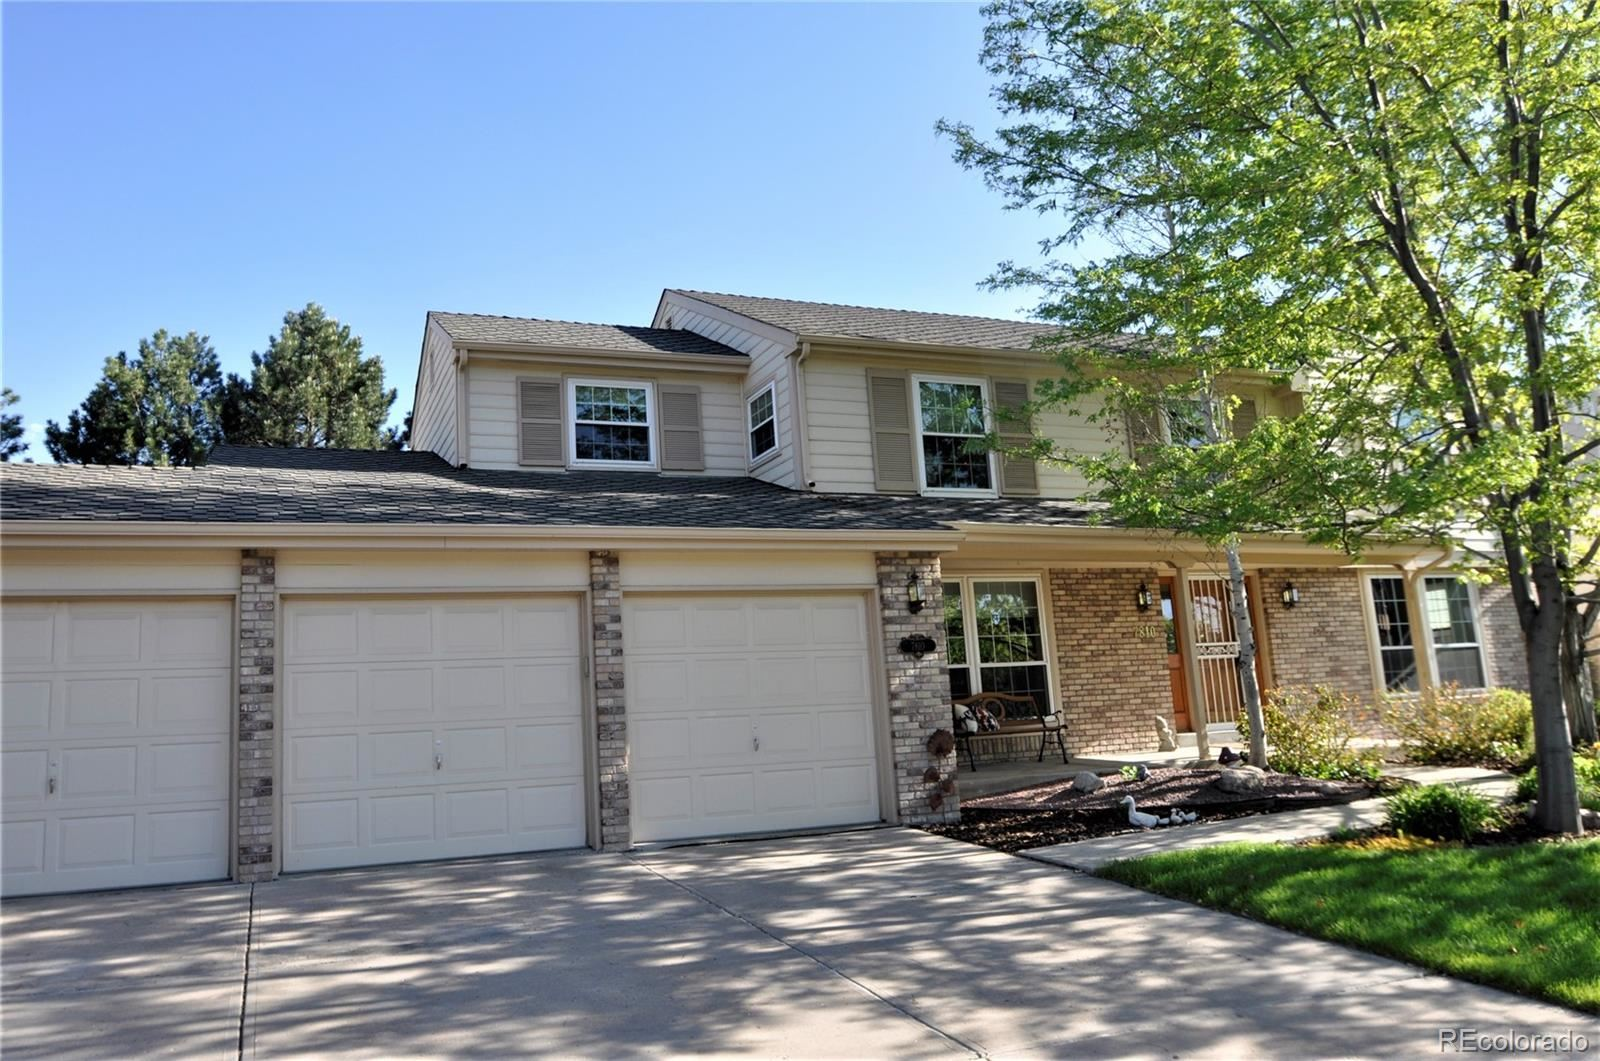 7810 W Quincy Drive, Lakewood, CO 80235 - #: 1749874